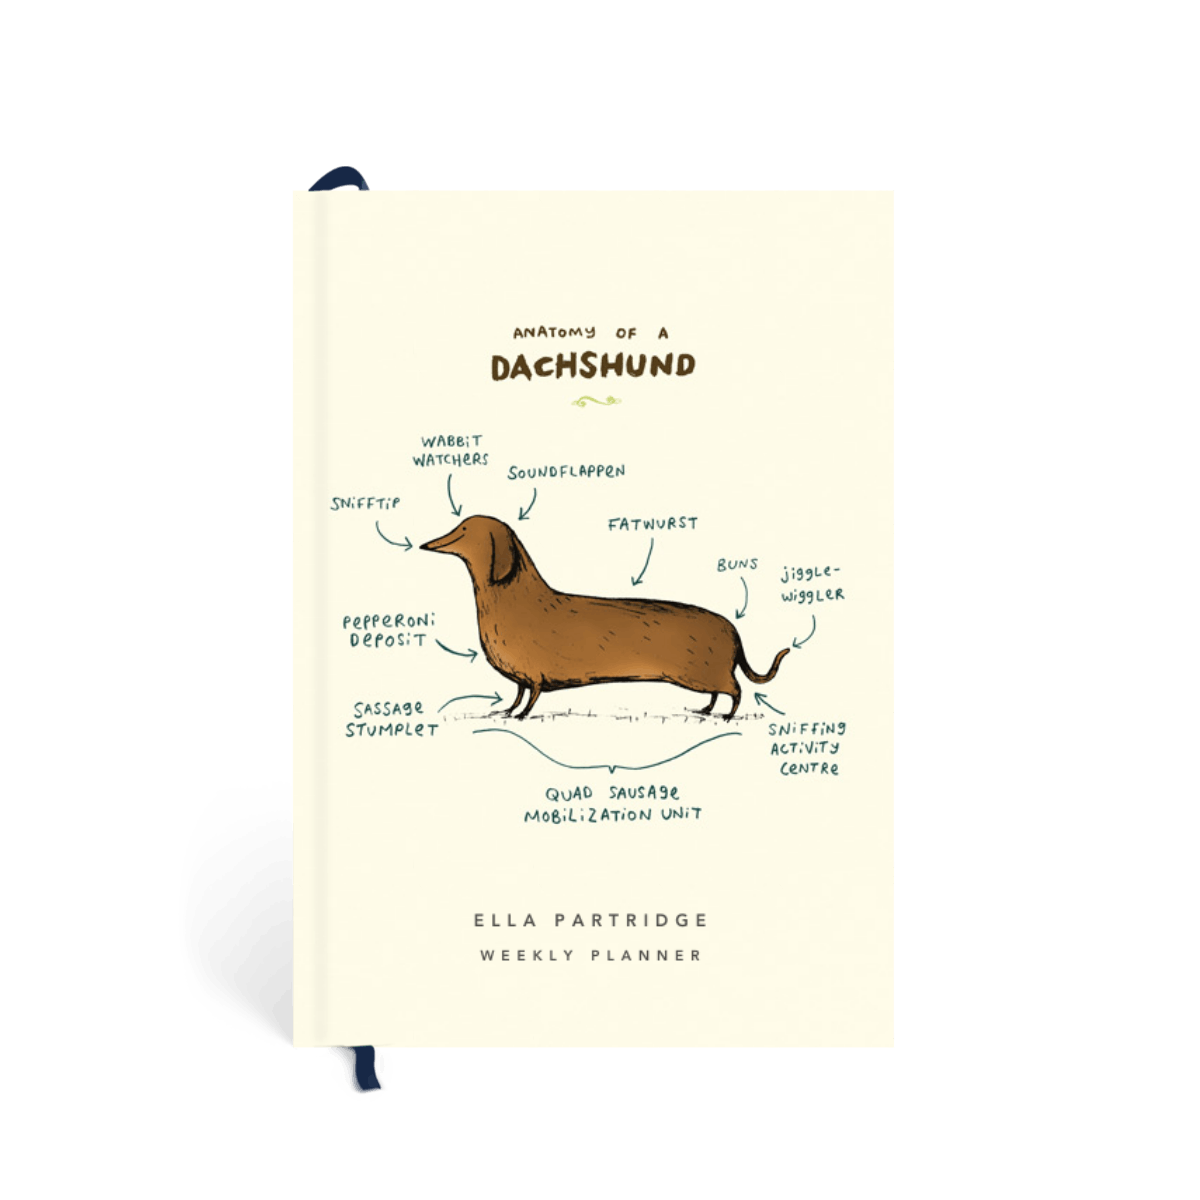 Https%3a%2f%2fwww.papier.com%2fproduct image%2f63569%2f36%2fanatomy of a dachshund 14953 front 1571143873.png?ixlib=rb 1.1